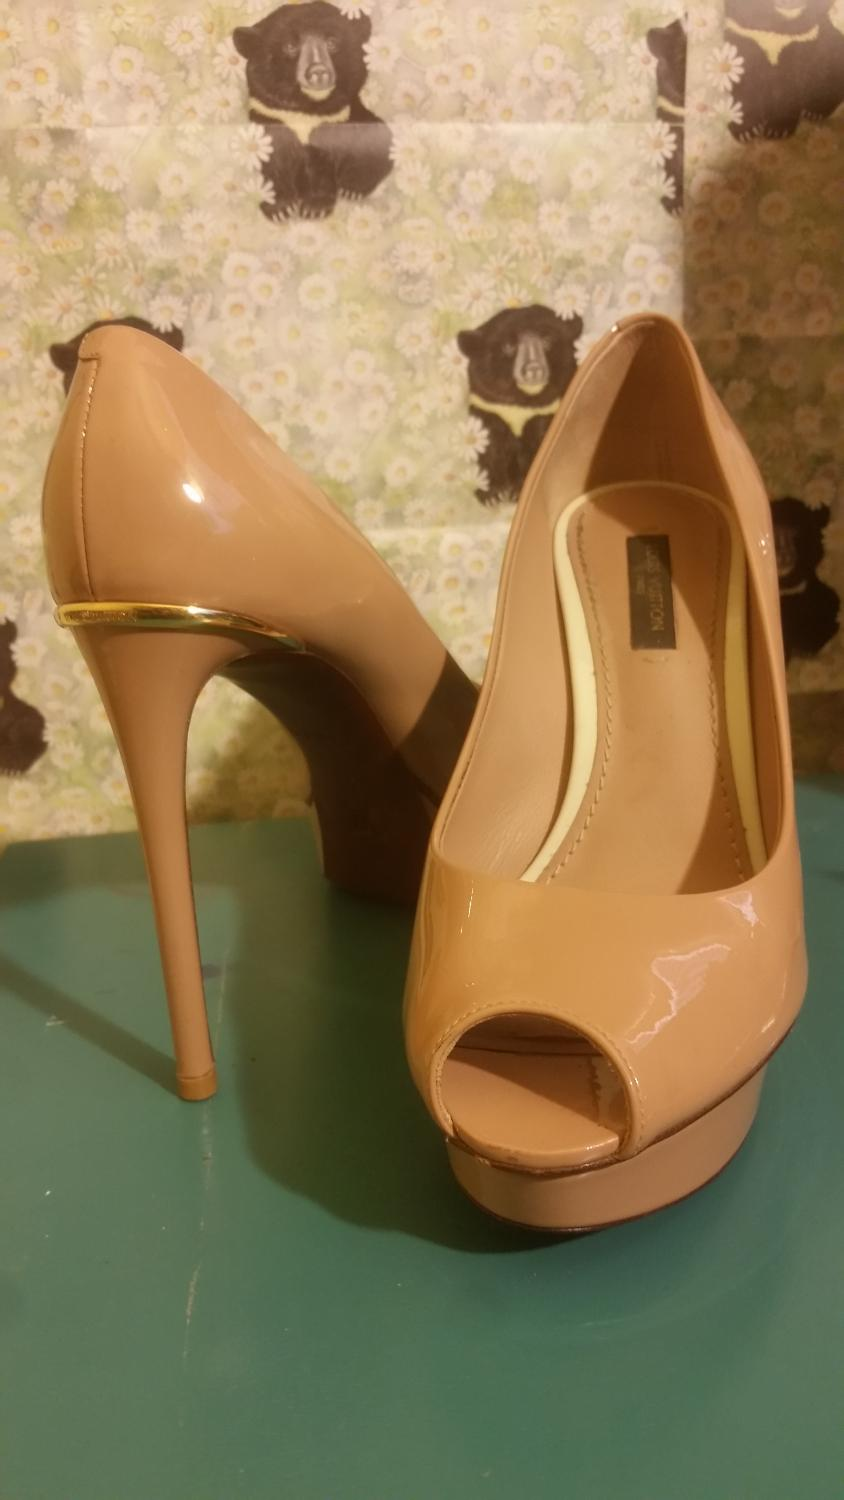 cddc3a0c3a6f Best Louis Vuitton Heels Size 36 for sale in Hacienda Heights ...